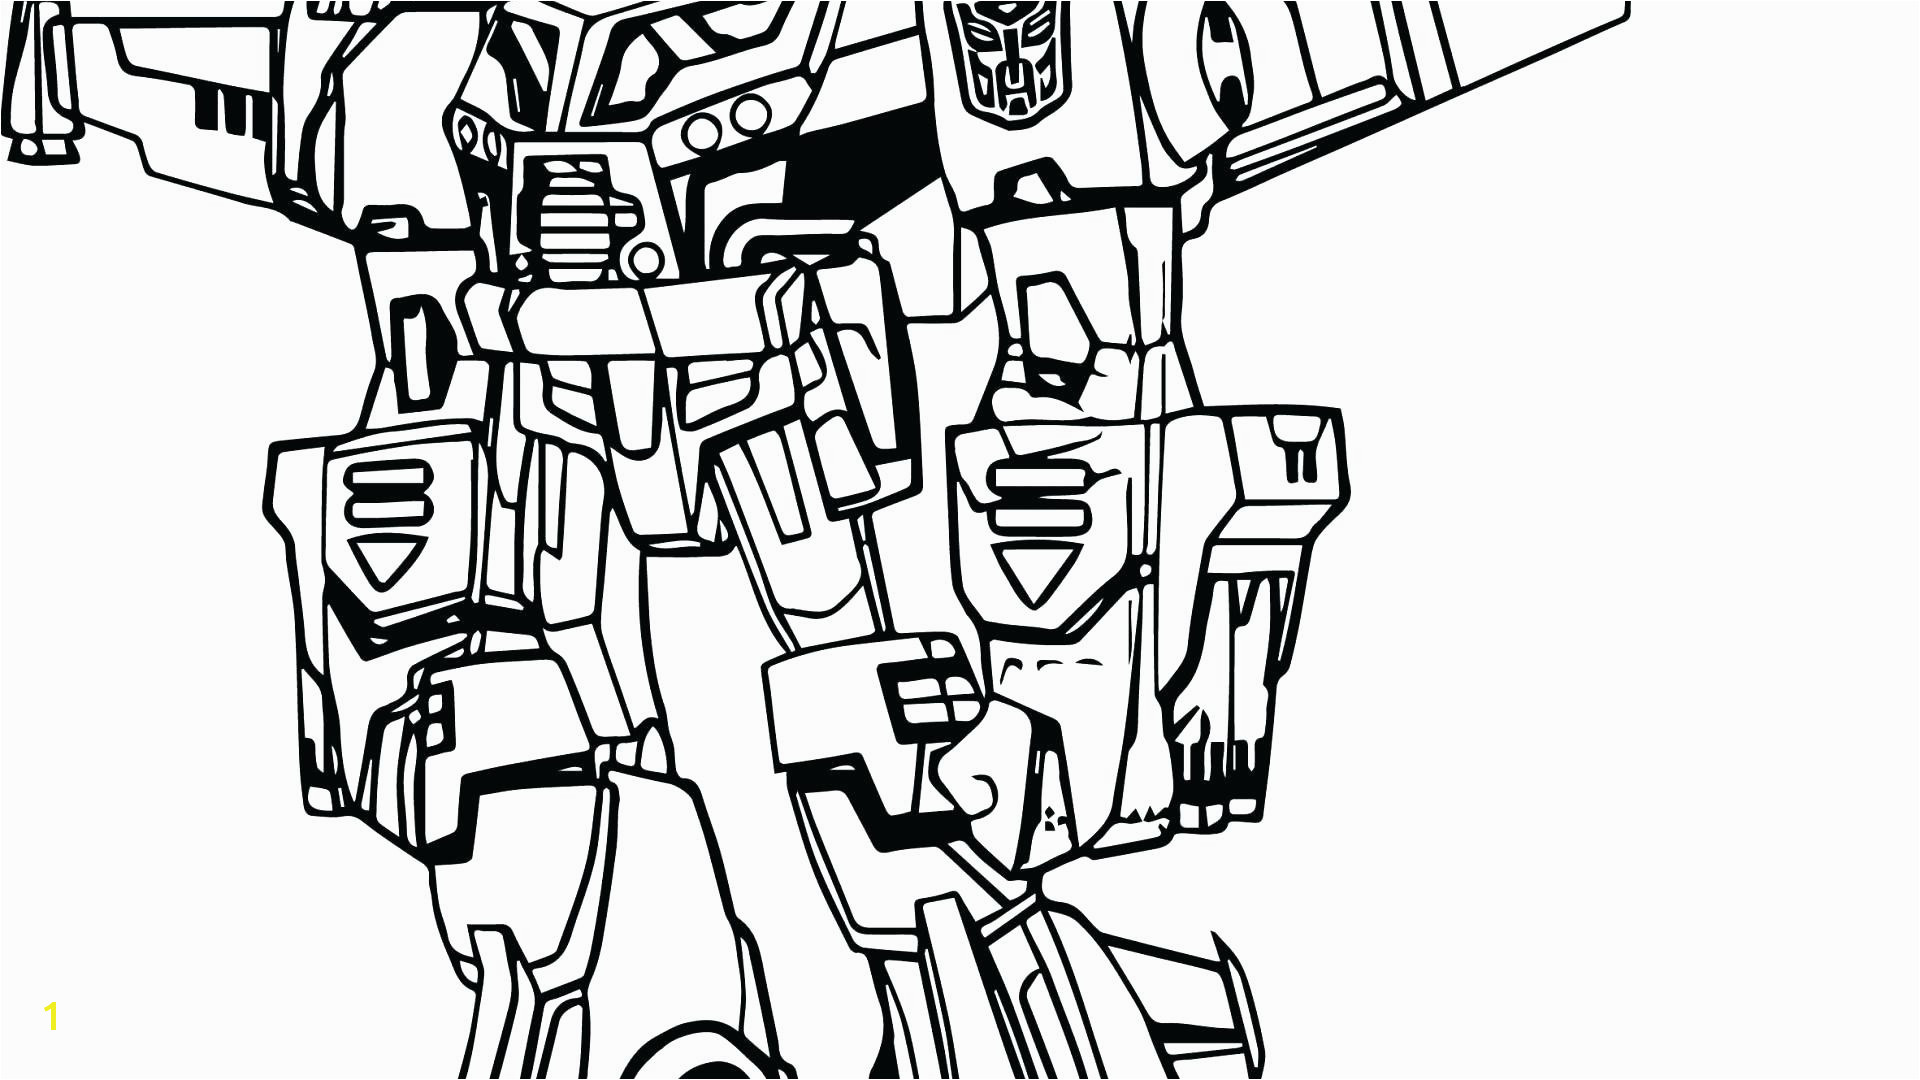 Transformer Coloring Pages Bumblebee Transformers Coloring Pages Awesome Coloring Pages Bumblebee Coloring Pages Best Transformer